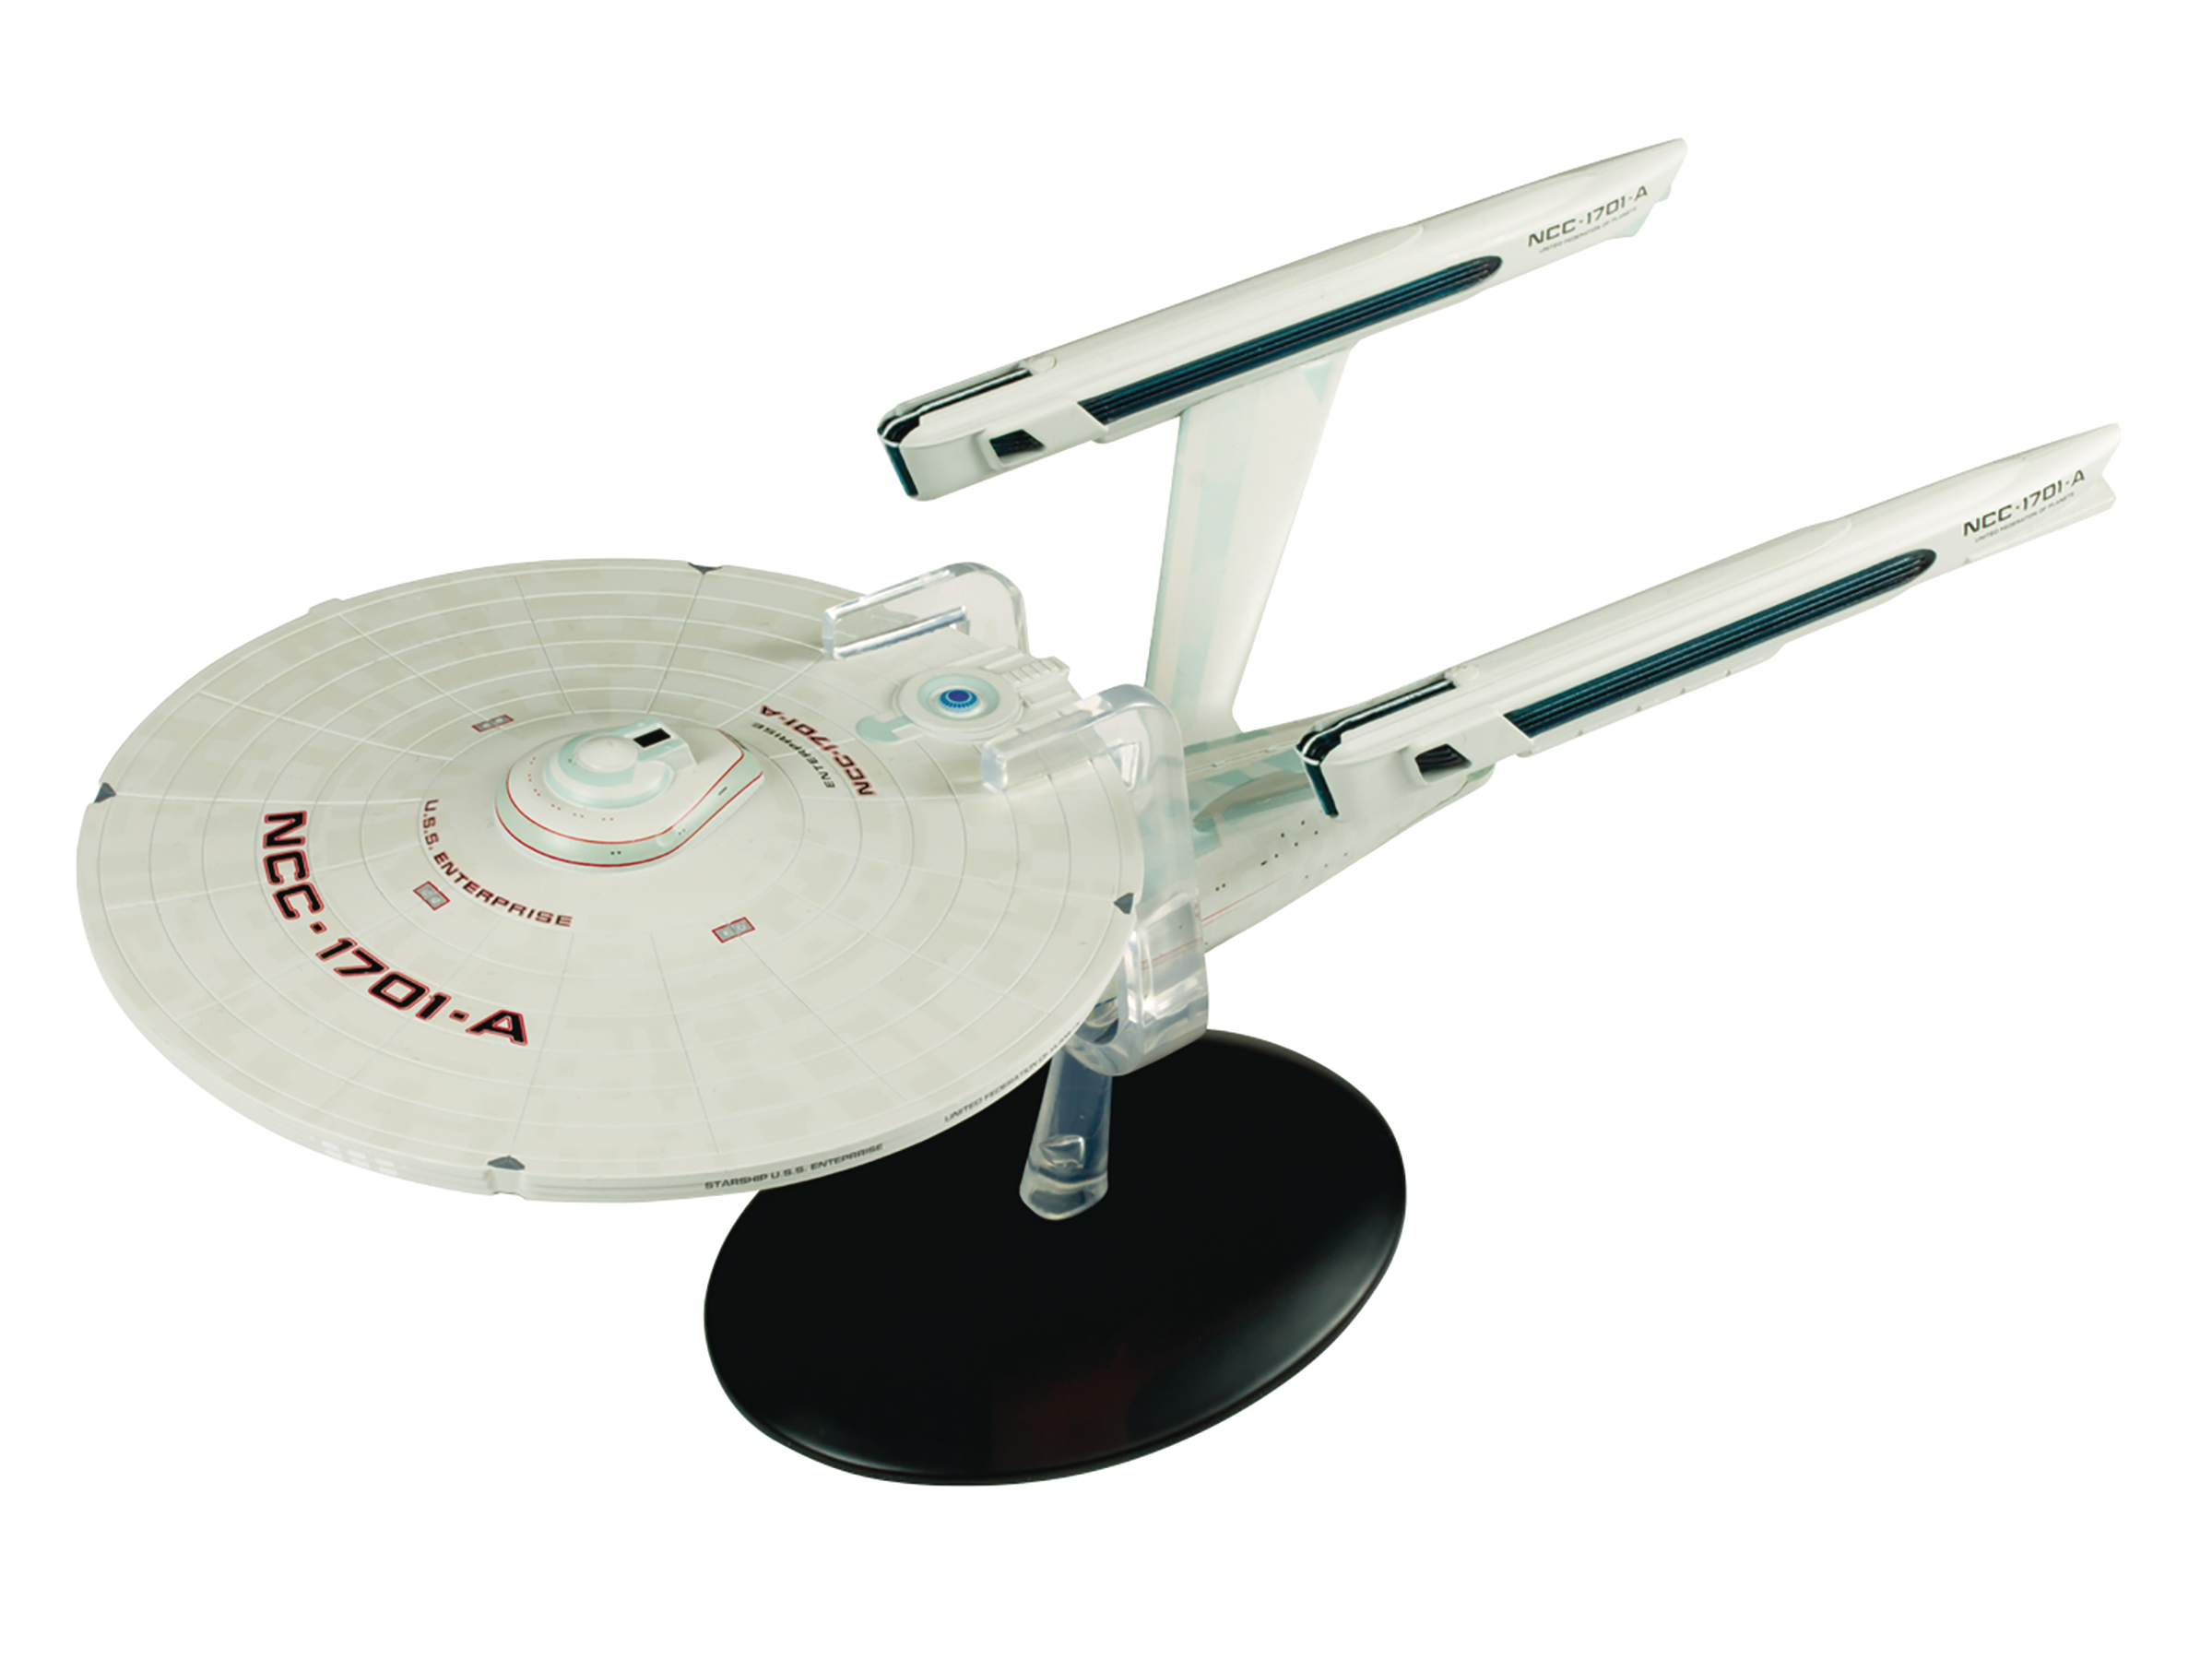 STAR TREK STARSHIPS SPECIAL #21 LG ENTERPRISE NCC-1701A